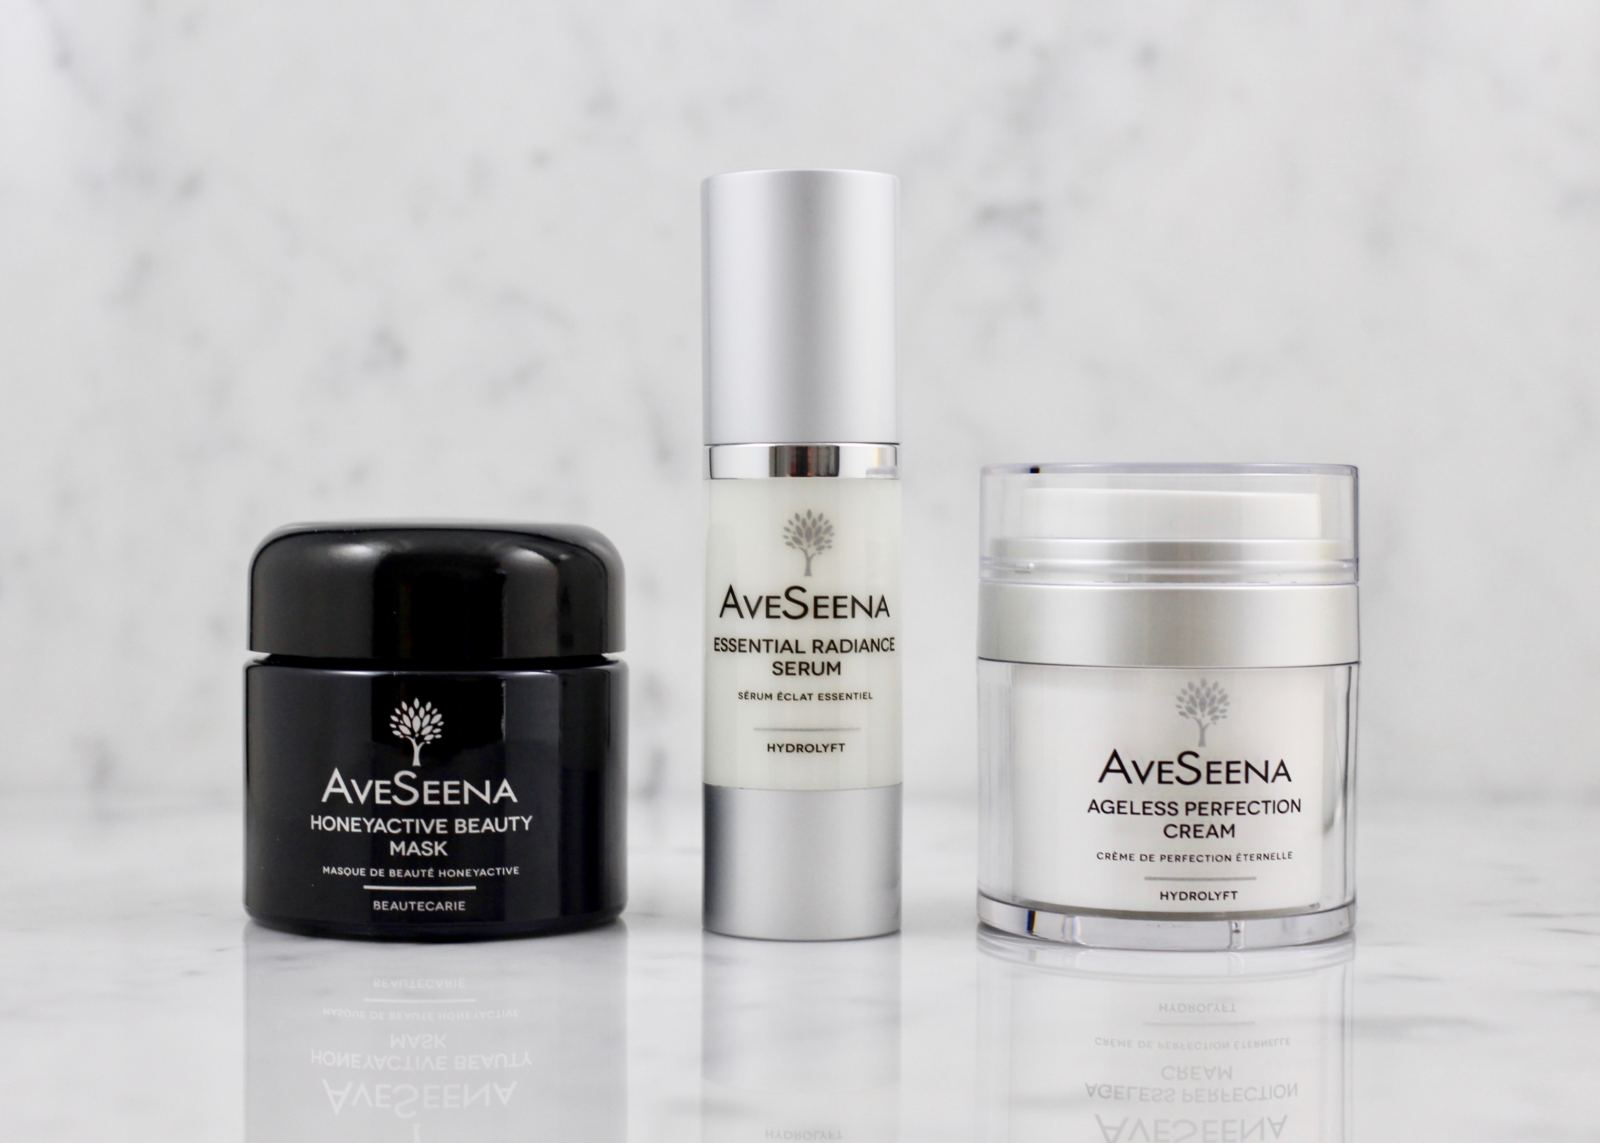 Brand Review: AveSeena